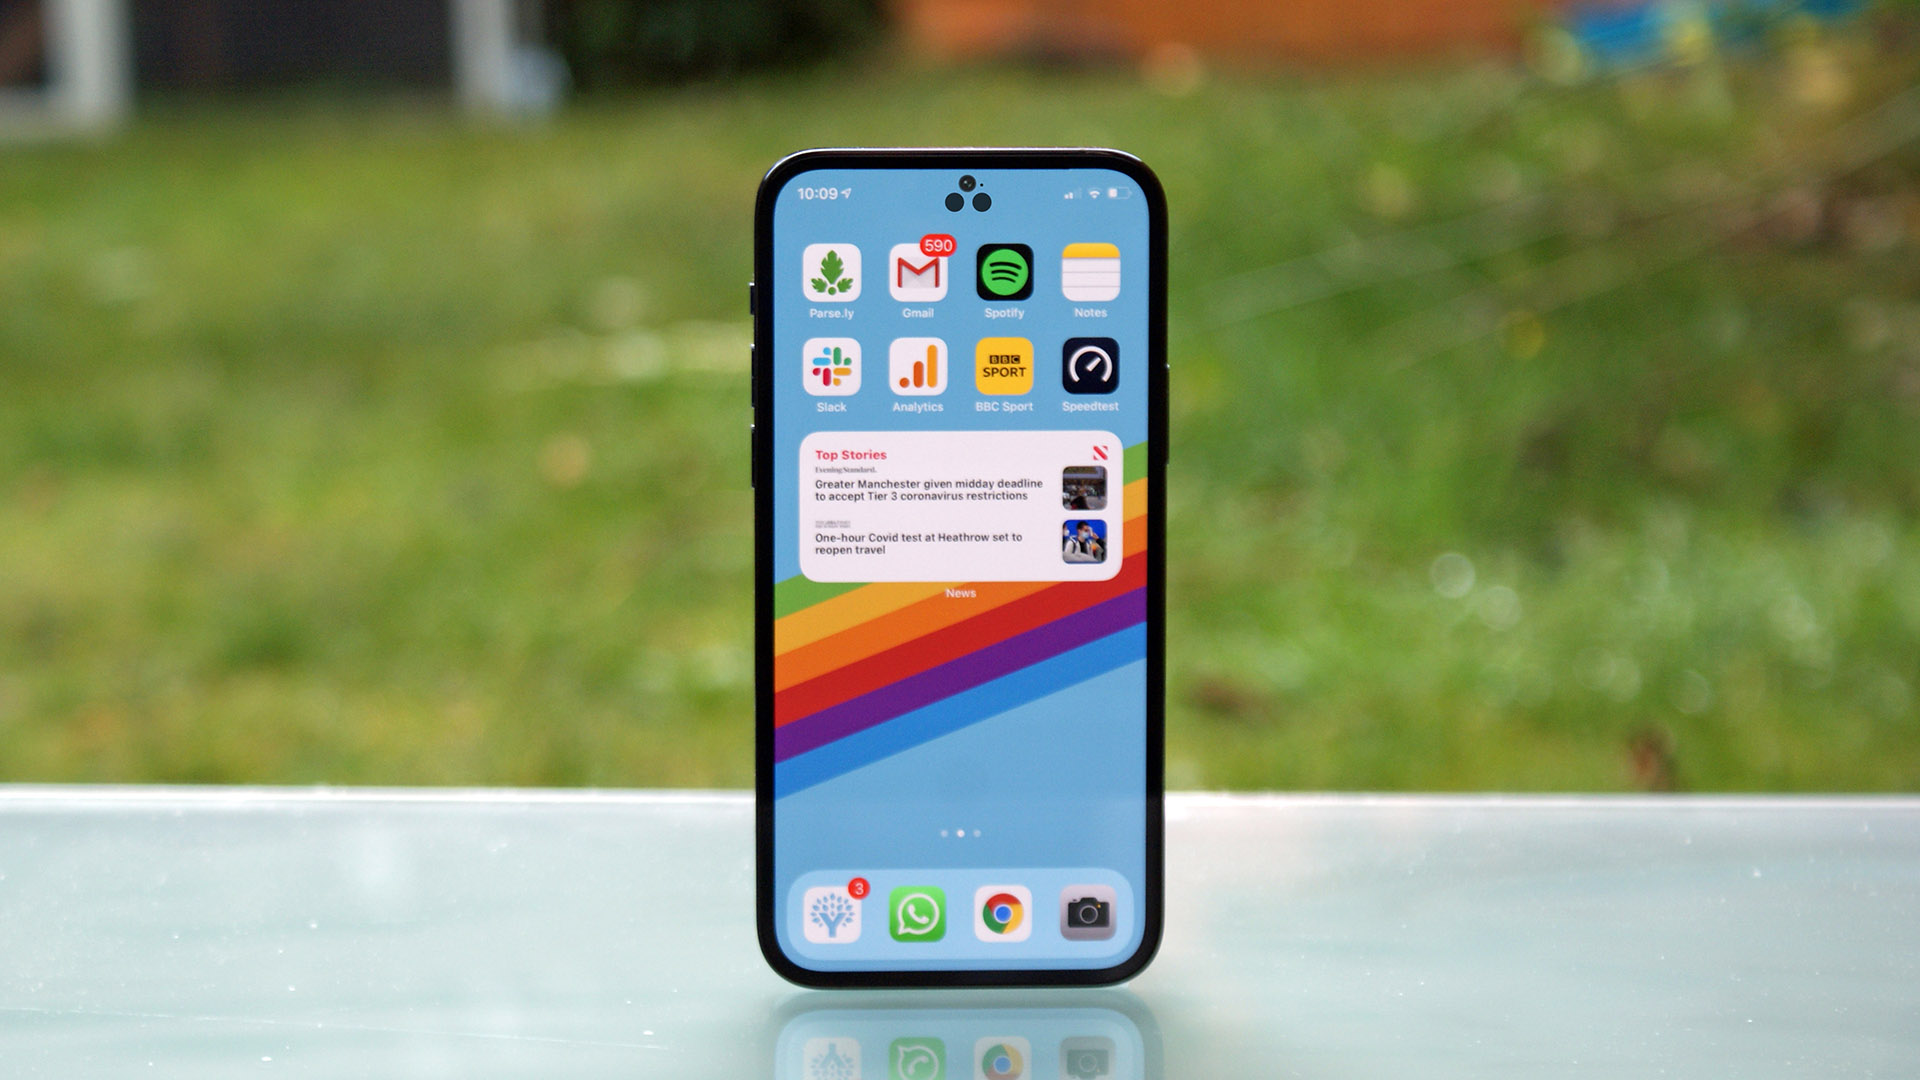 notch-less-iPhone-concept-2